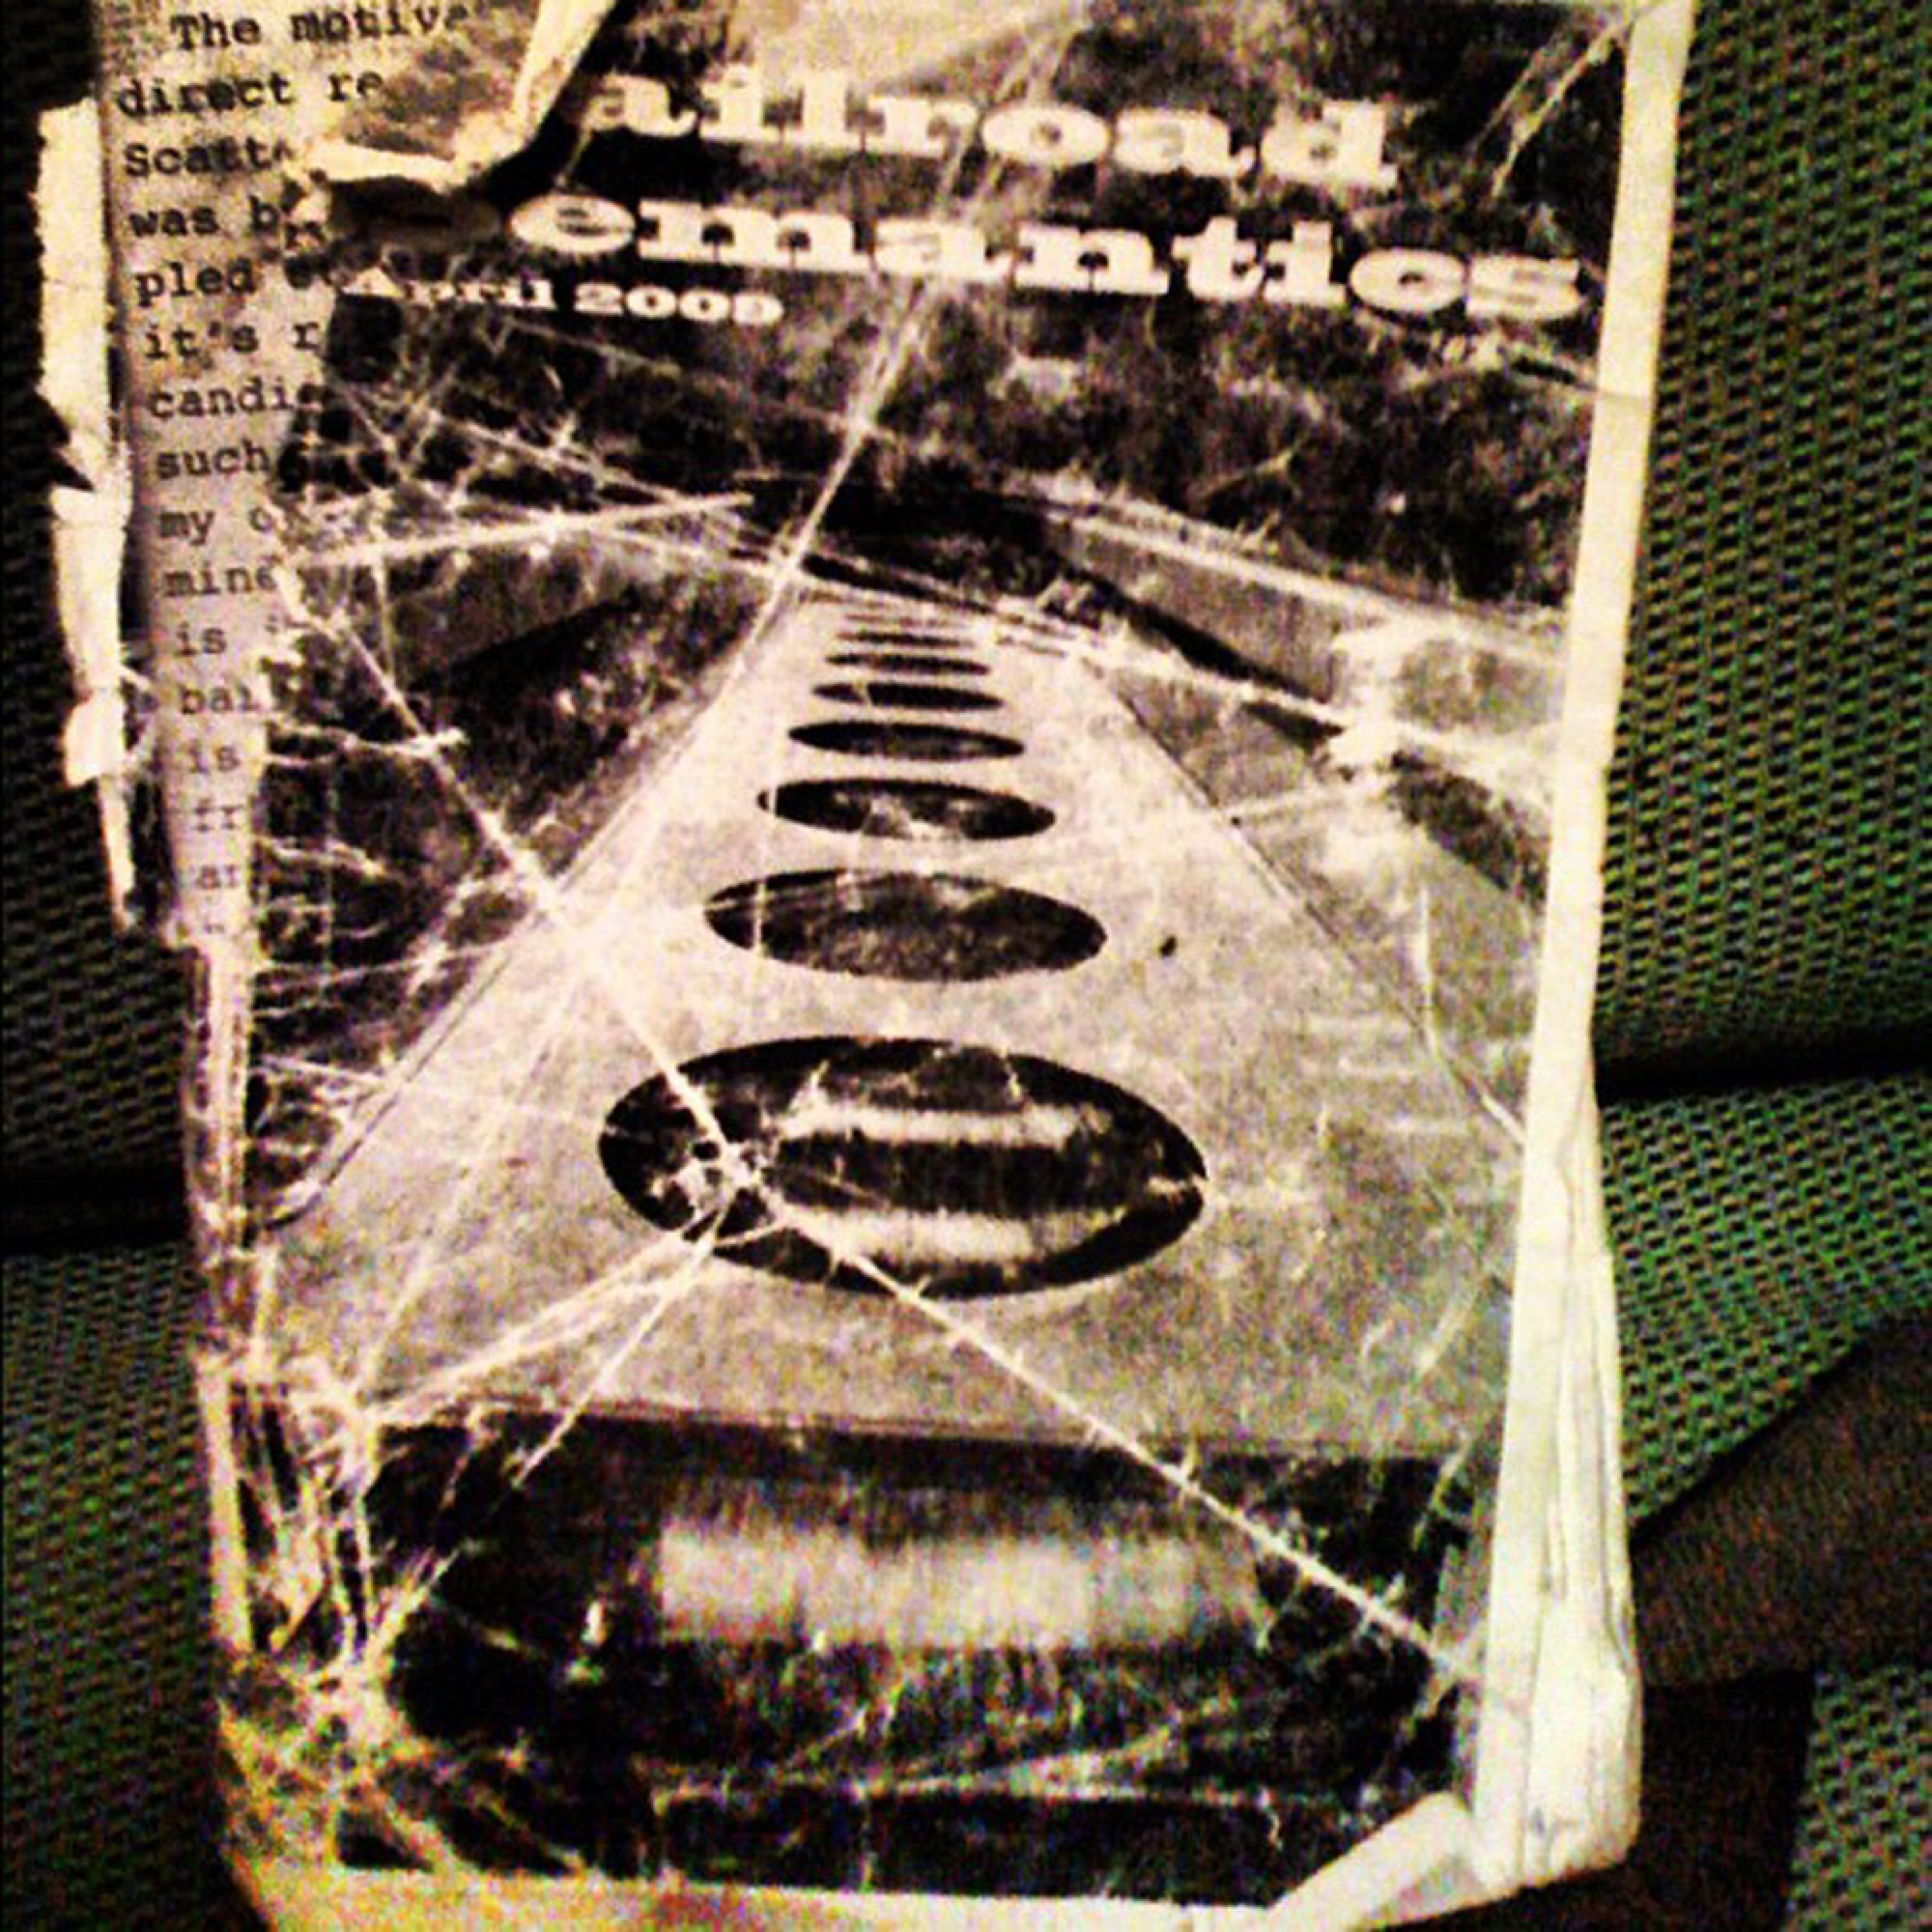 an original railroad semantics zine